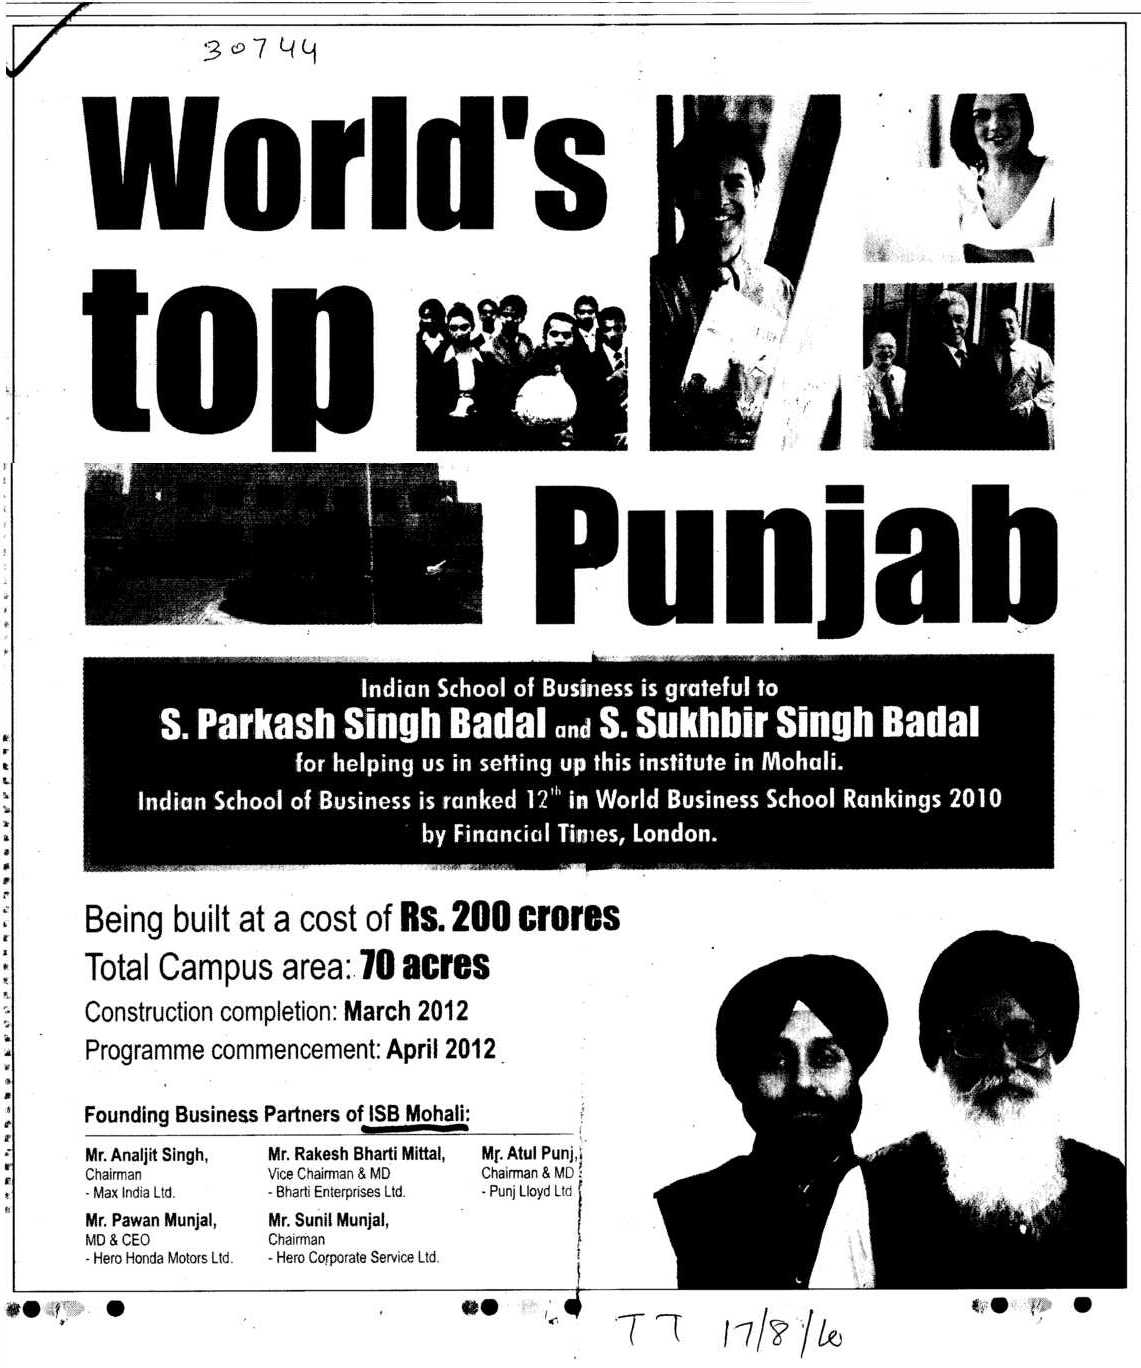 Worlds top Punjab (Indian School of Business Chandigarh Mohali Campus)